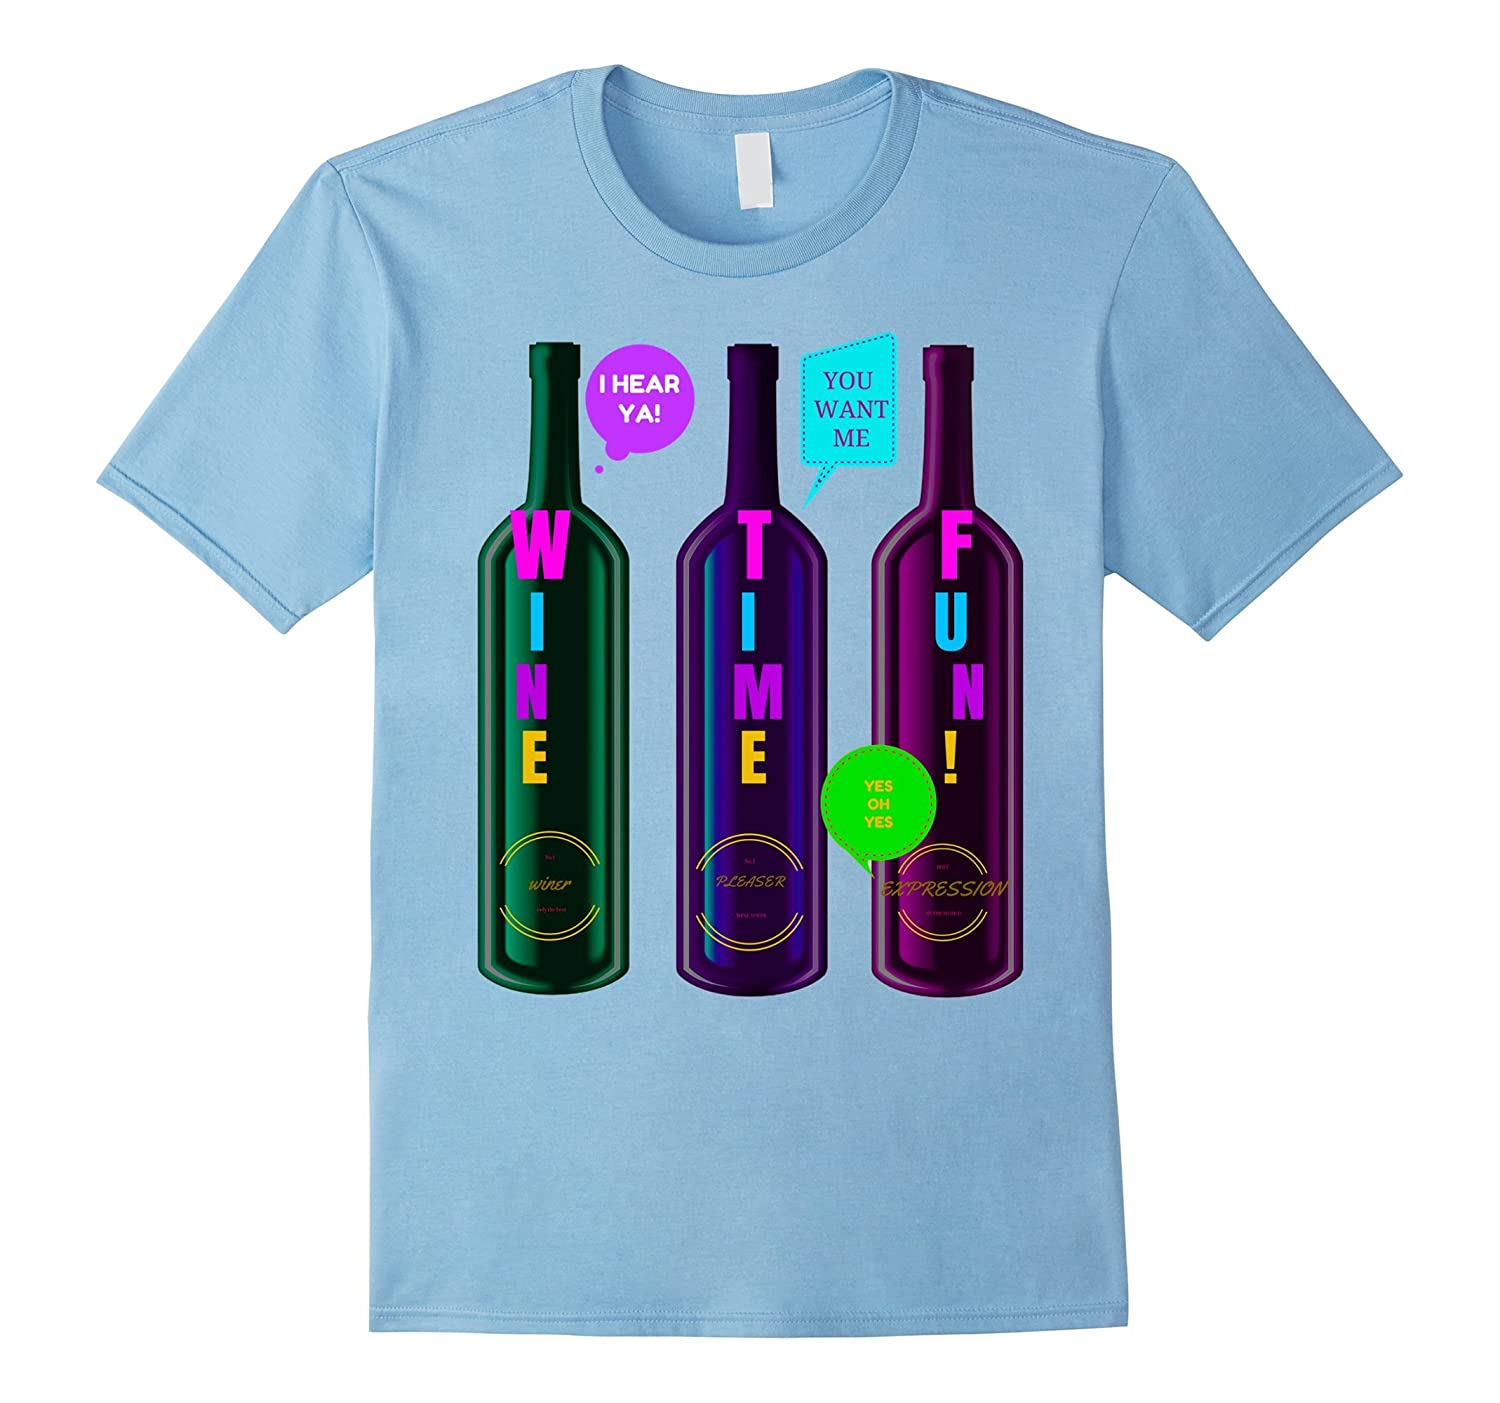 WINE TIME FUN WINE LOVER'S SPECIALTY NOVELTY GIFT T SHIRT